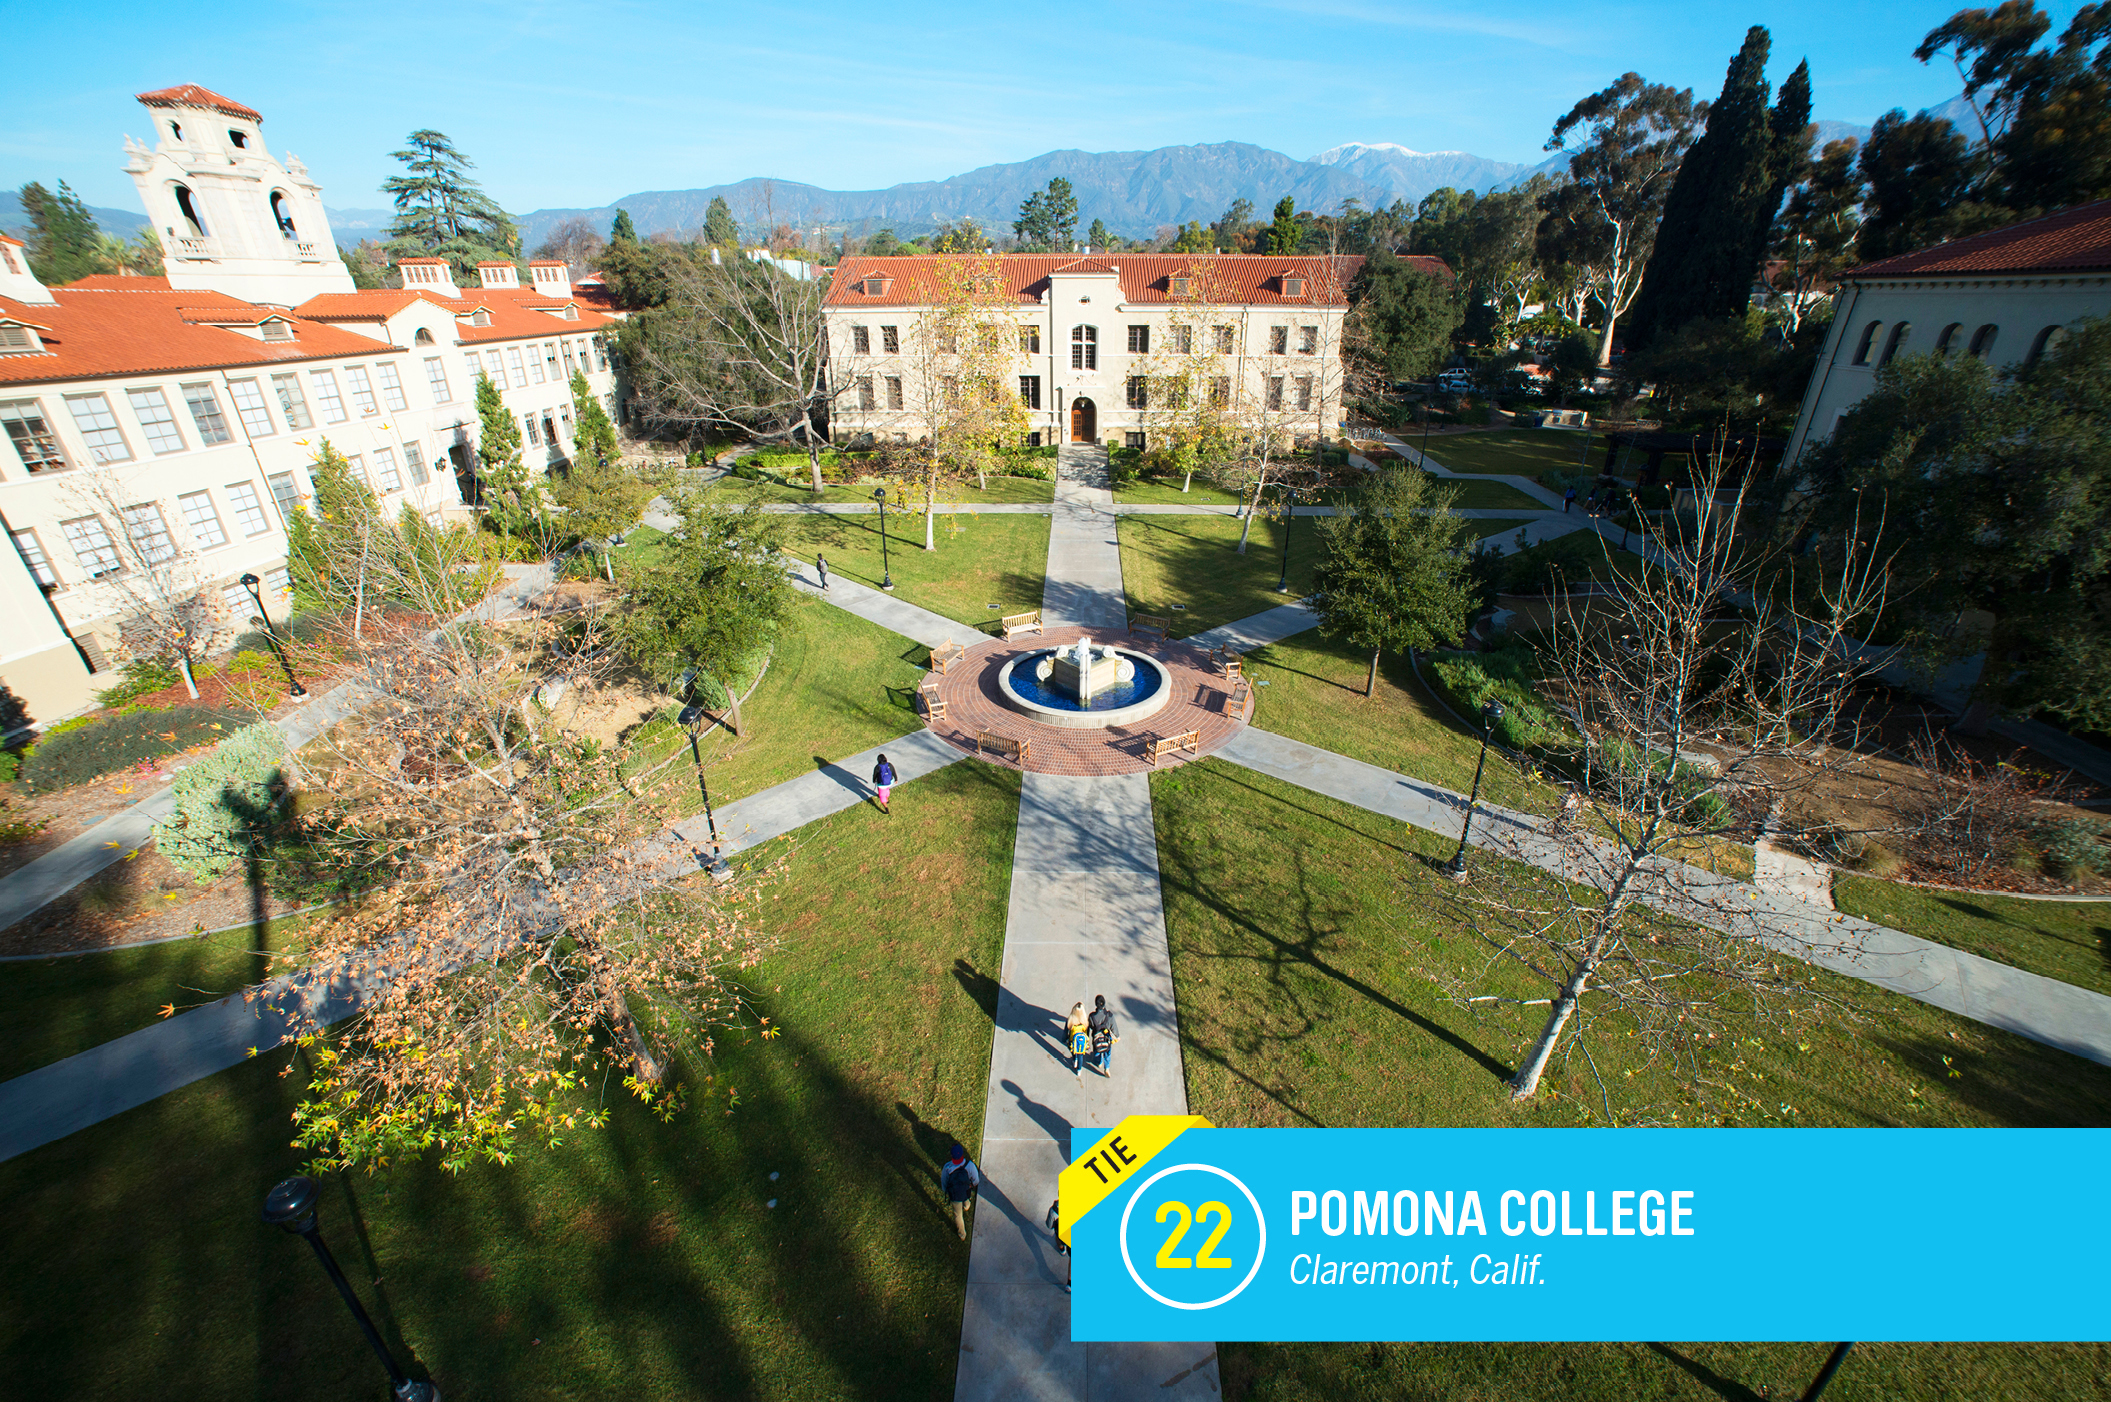 "<a href=""https://money.com/best-colleges/profile/pomona-college/"" target=""_blank"">Pomona</a> is among the handful of schools vowing to meet student's full demonstrated need with aid, so more than 70% of grads have no student debt. With 1,600 undergraduates, Pomona features close student-faculty relationships. <a href=""https://money.com/best-colleges/profile/pomona-college/"" target=""_blank"">FULL PROFILE</a>"